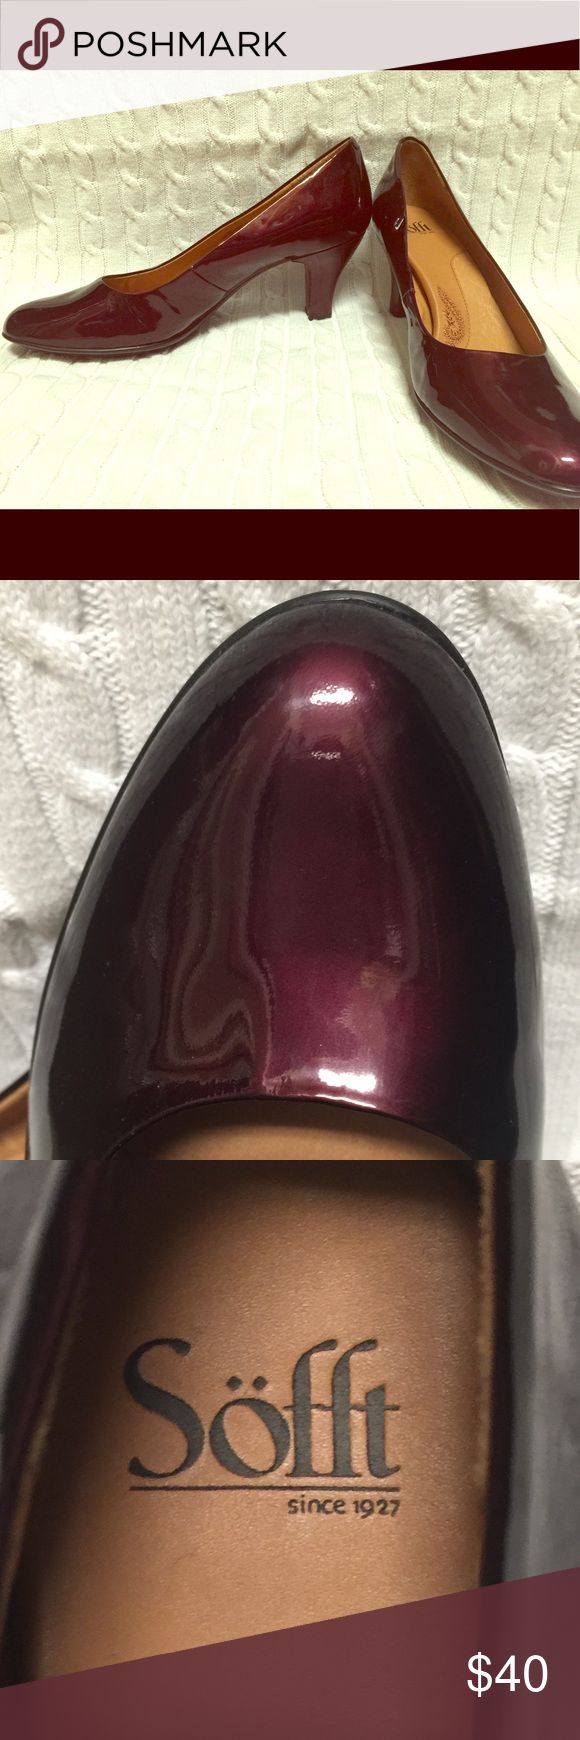 Sofft Lima pump is Chianti Patent sz 12 never worn A classic, sophisticated style with comfortable softness that you will have to feel to believe is what comes with the Sofft Women Lima Pump! This classic pump comes in glossy patent leather to fit your style preference. A latex foam footbed provides amazing cushioned comfort as you walk, while the polyurethane outsole and steel shank offers superior stability and support each step. The Chianti patent color is not your boring black yet…